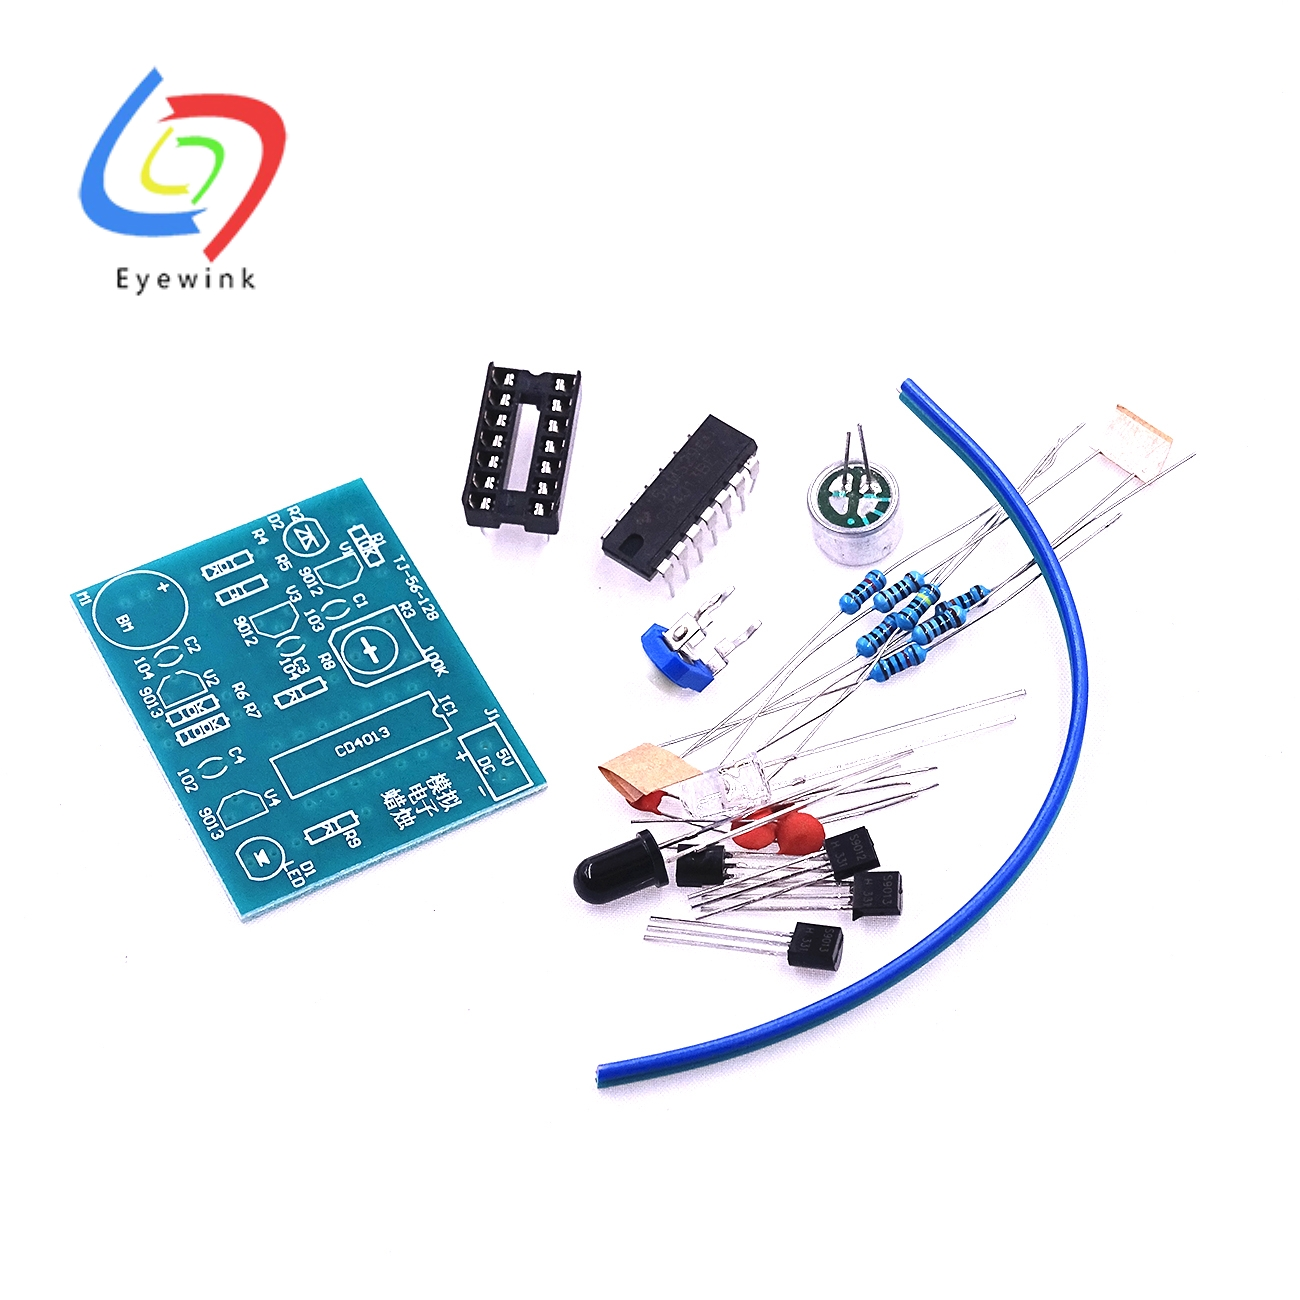 Analog Electronic Candle Making Kit Ignition + Blowing Control Simulation Candle Fun Electronic Production Of Spare Parts